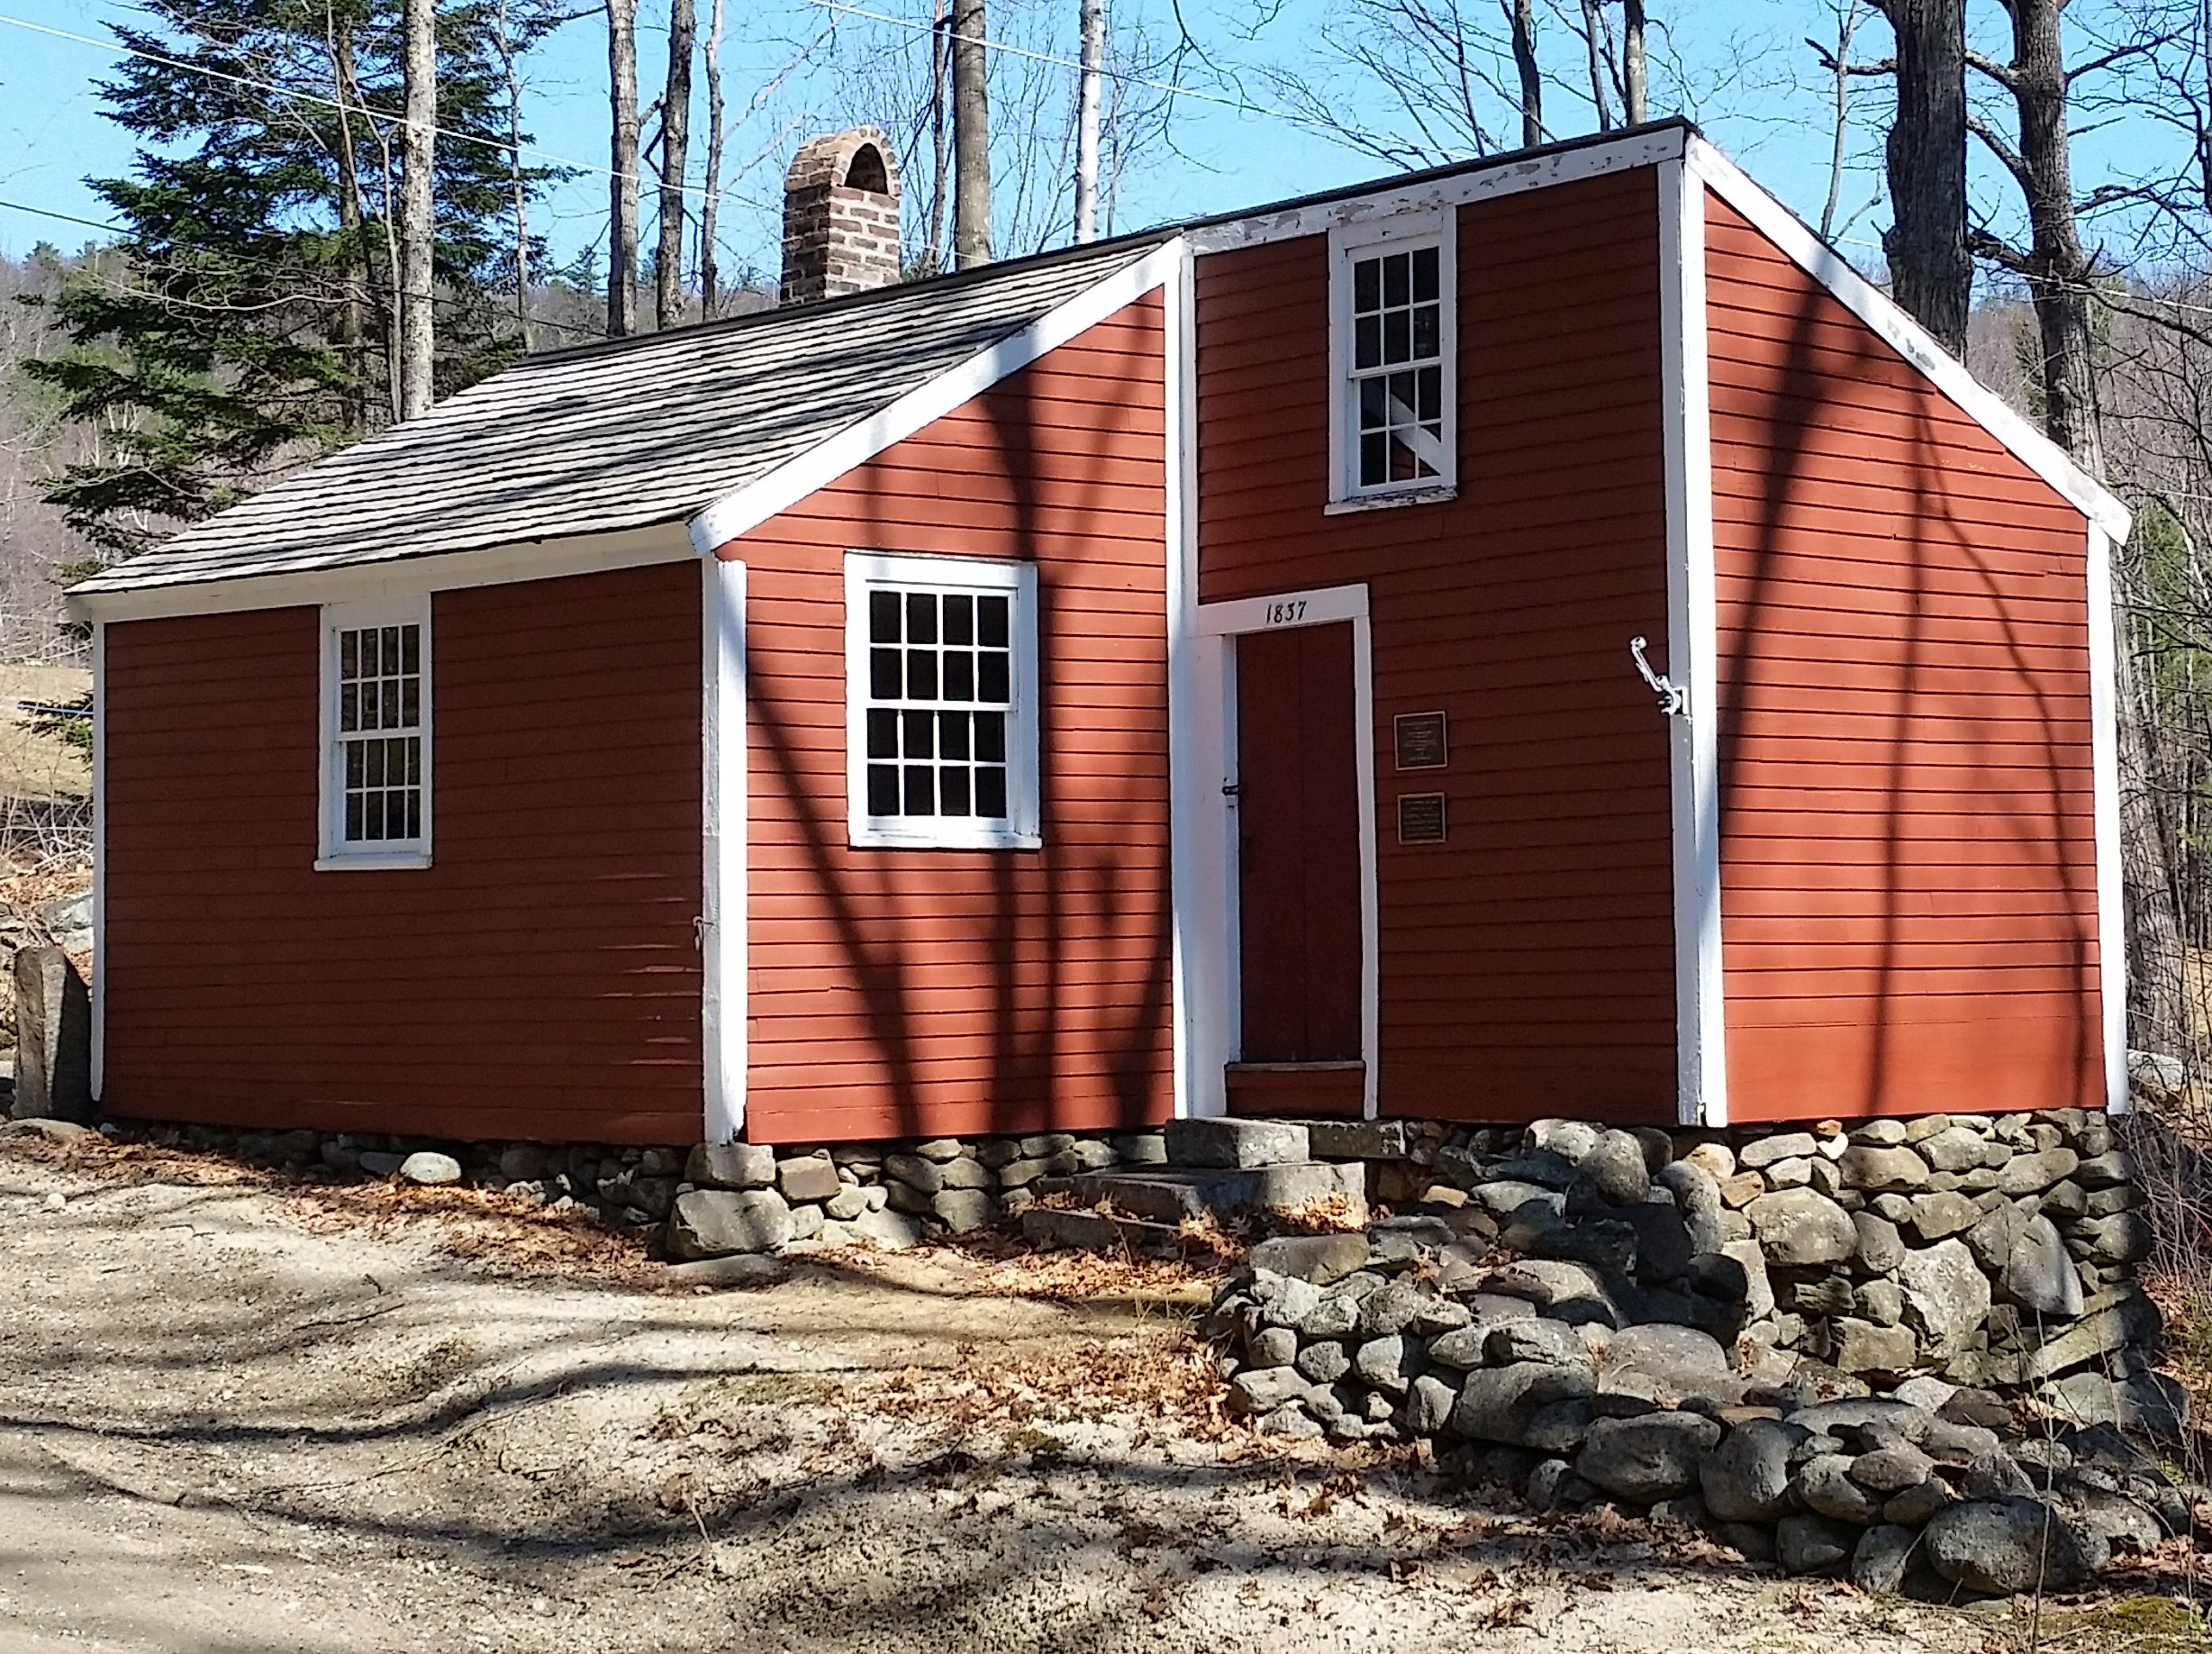 Tucker Mountain Schoolhouse